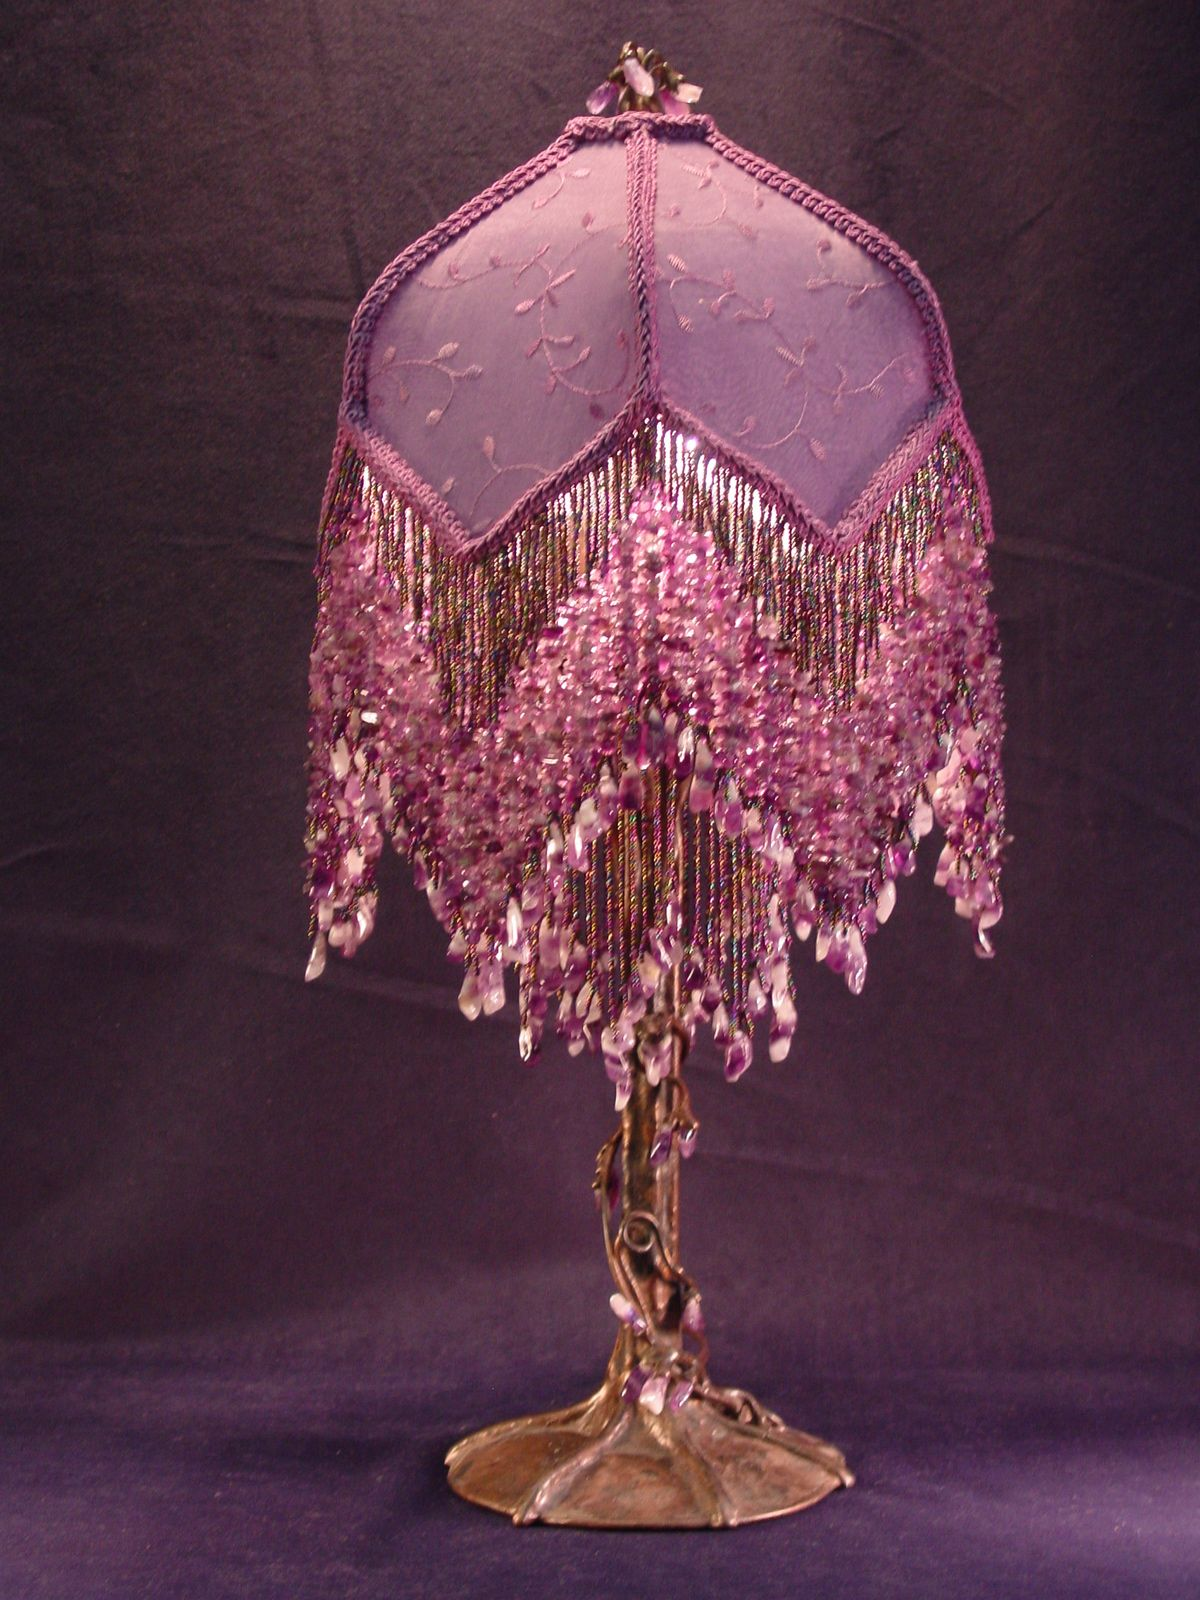 Victorian beaded lamps lampe pinterest lamp shades the november filed under lamps victorian beaded lamps image of victorian beaded lamp shades geotapseo Image collections